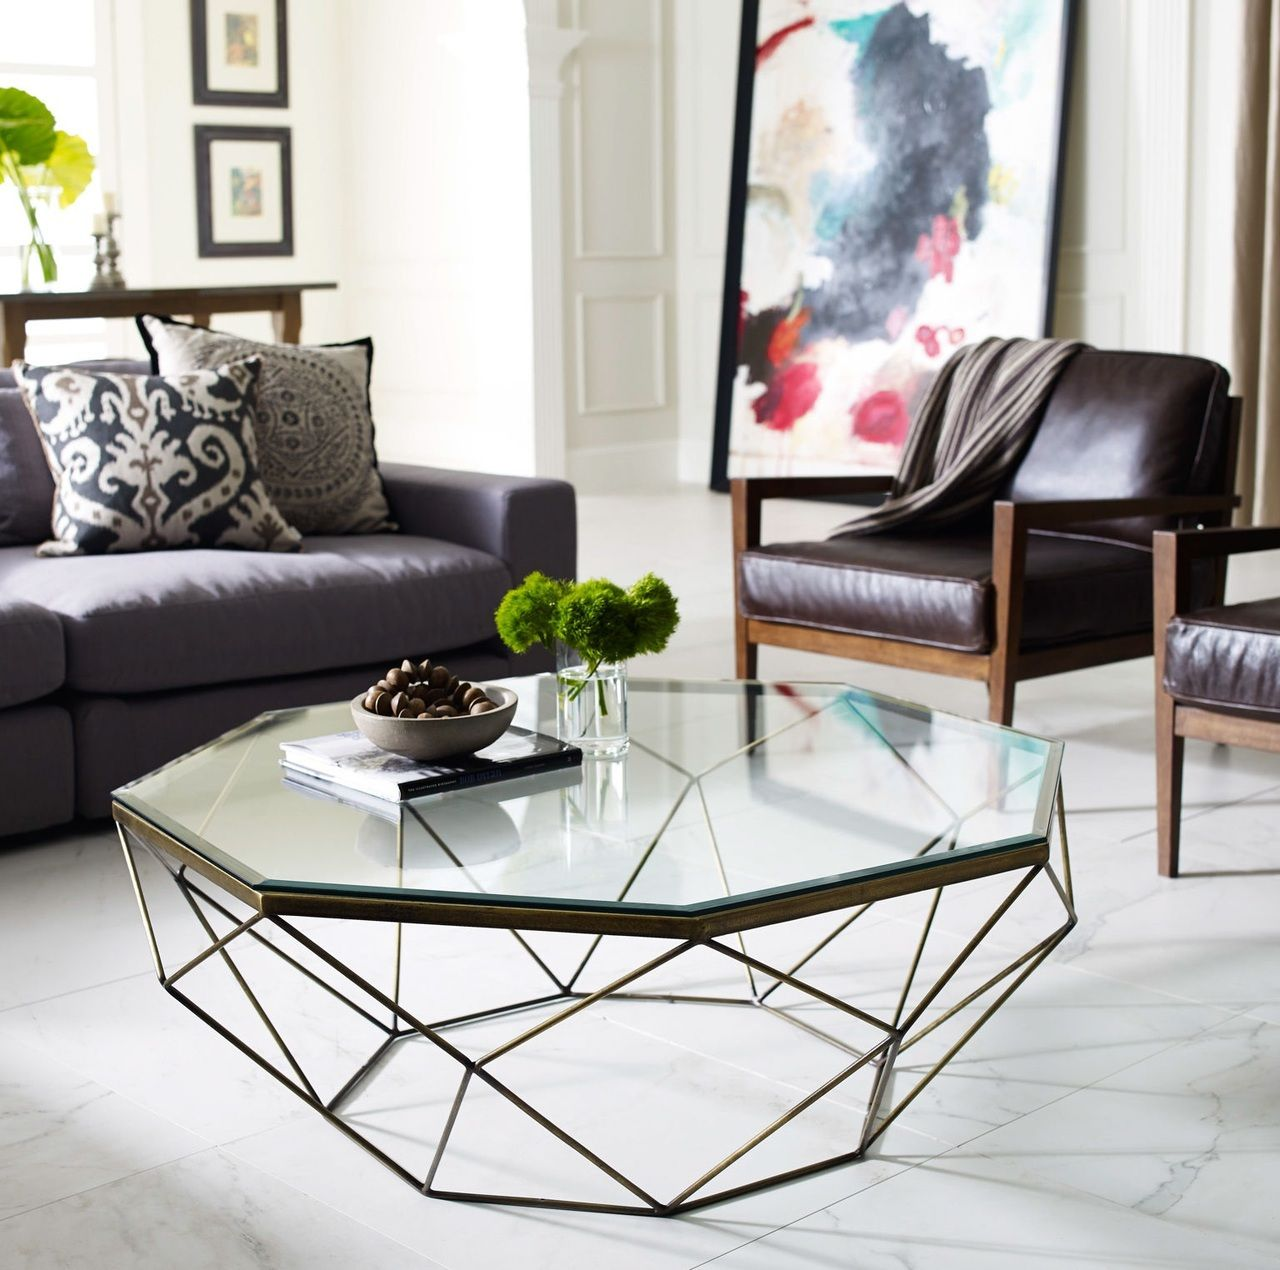 Geometric antique brass coffee table with glass top antique brass mid century and living rooms for Pictures of living rooms without coffee tables